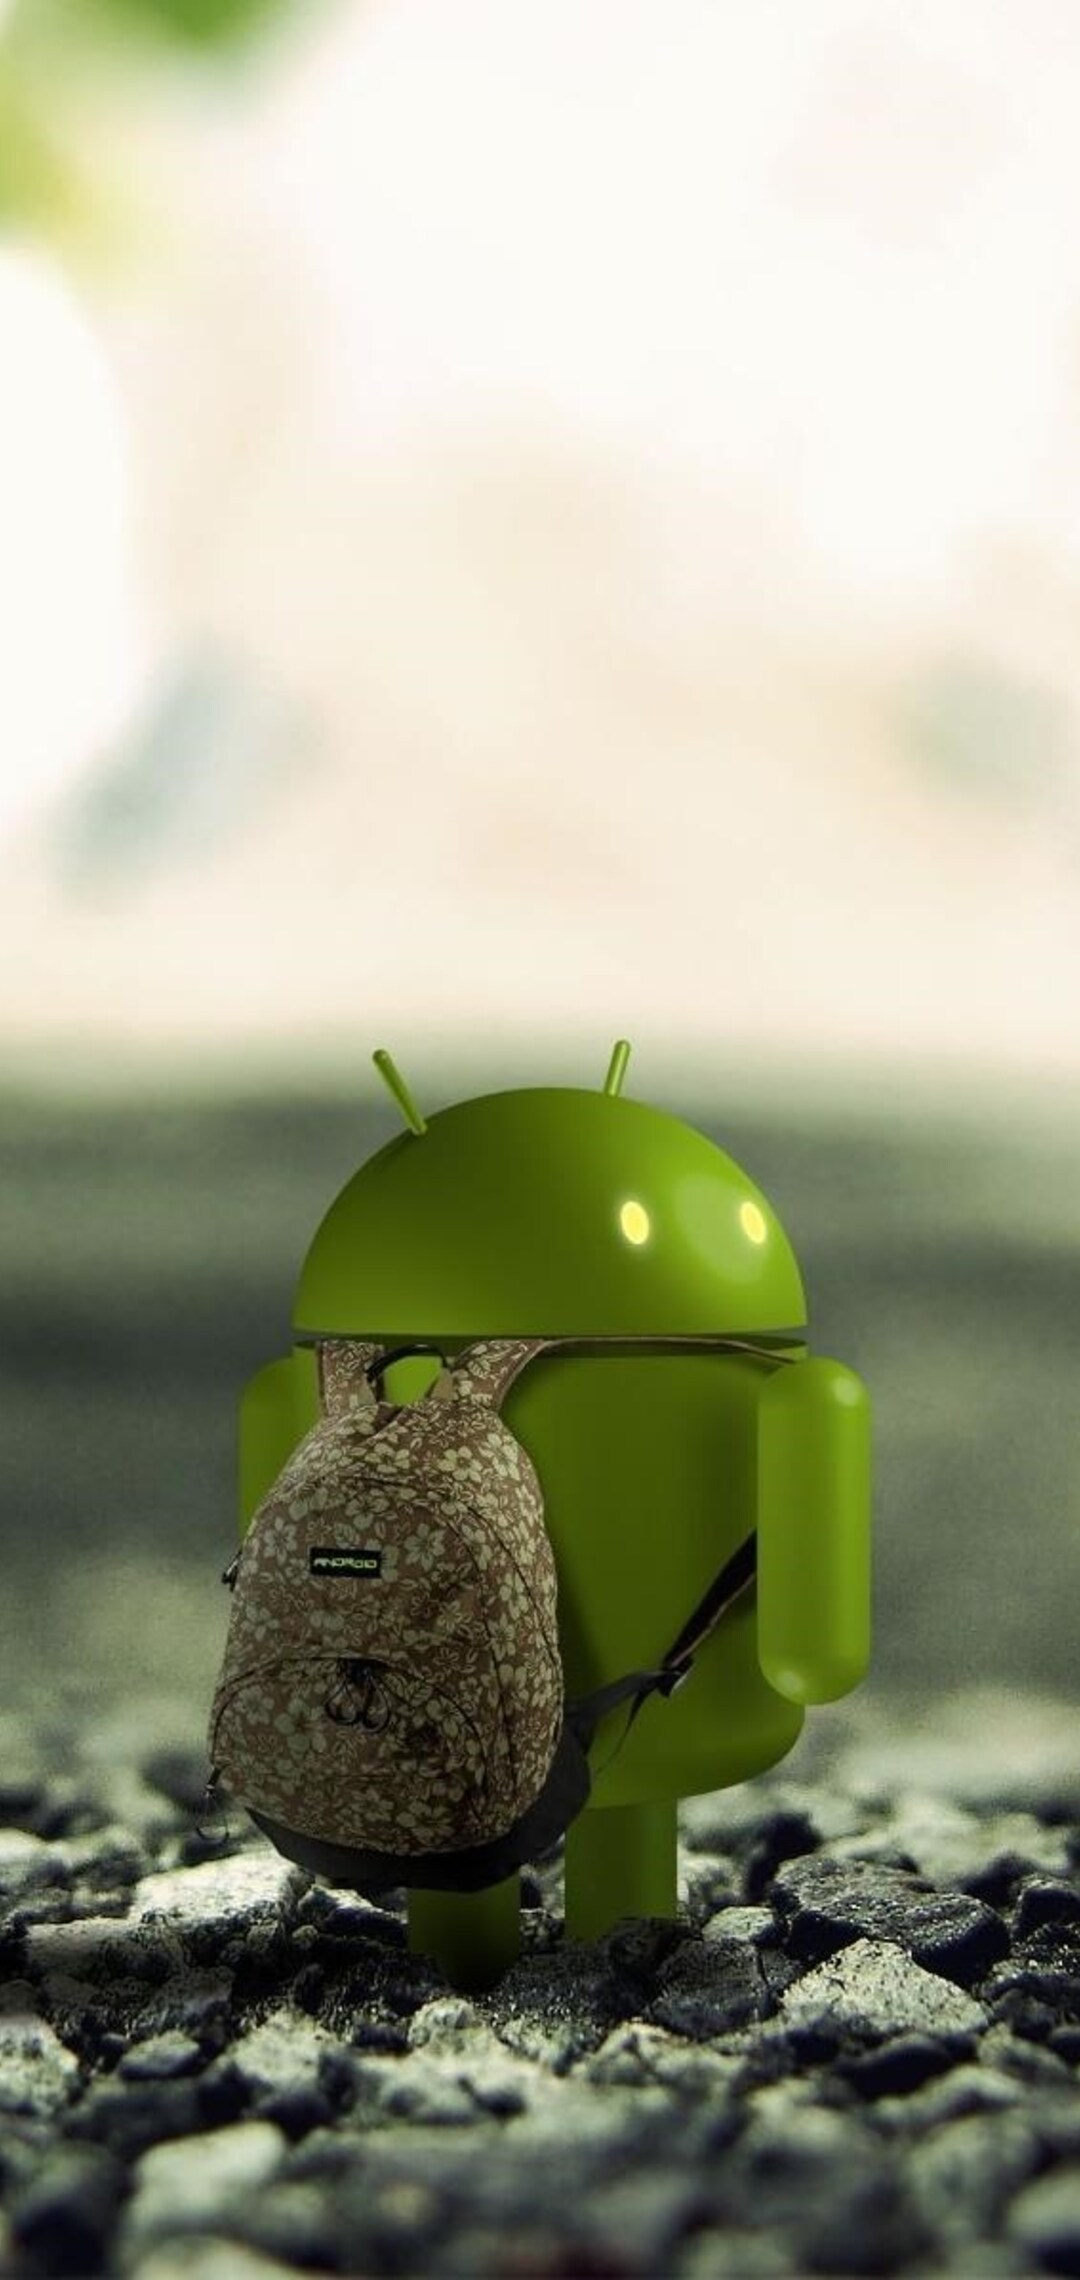 android-3d-hd.jpg